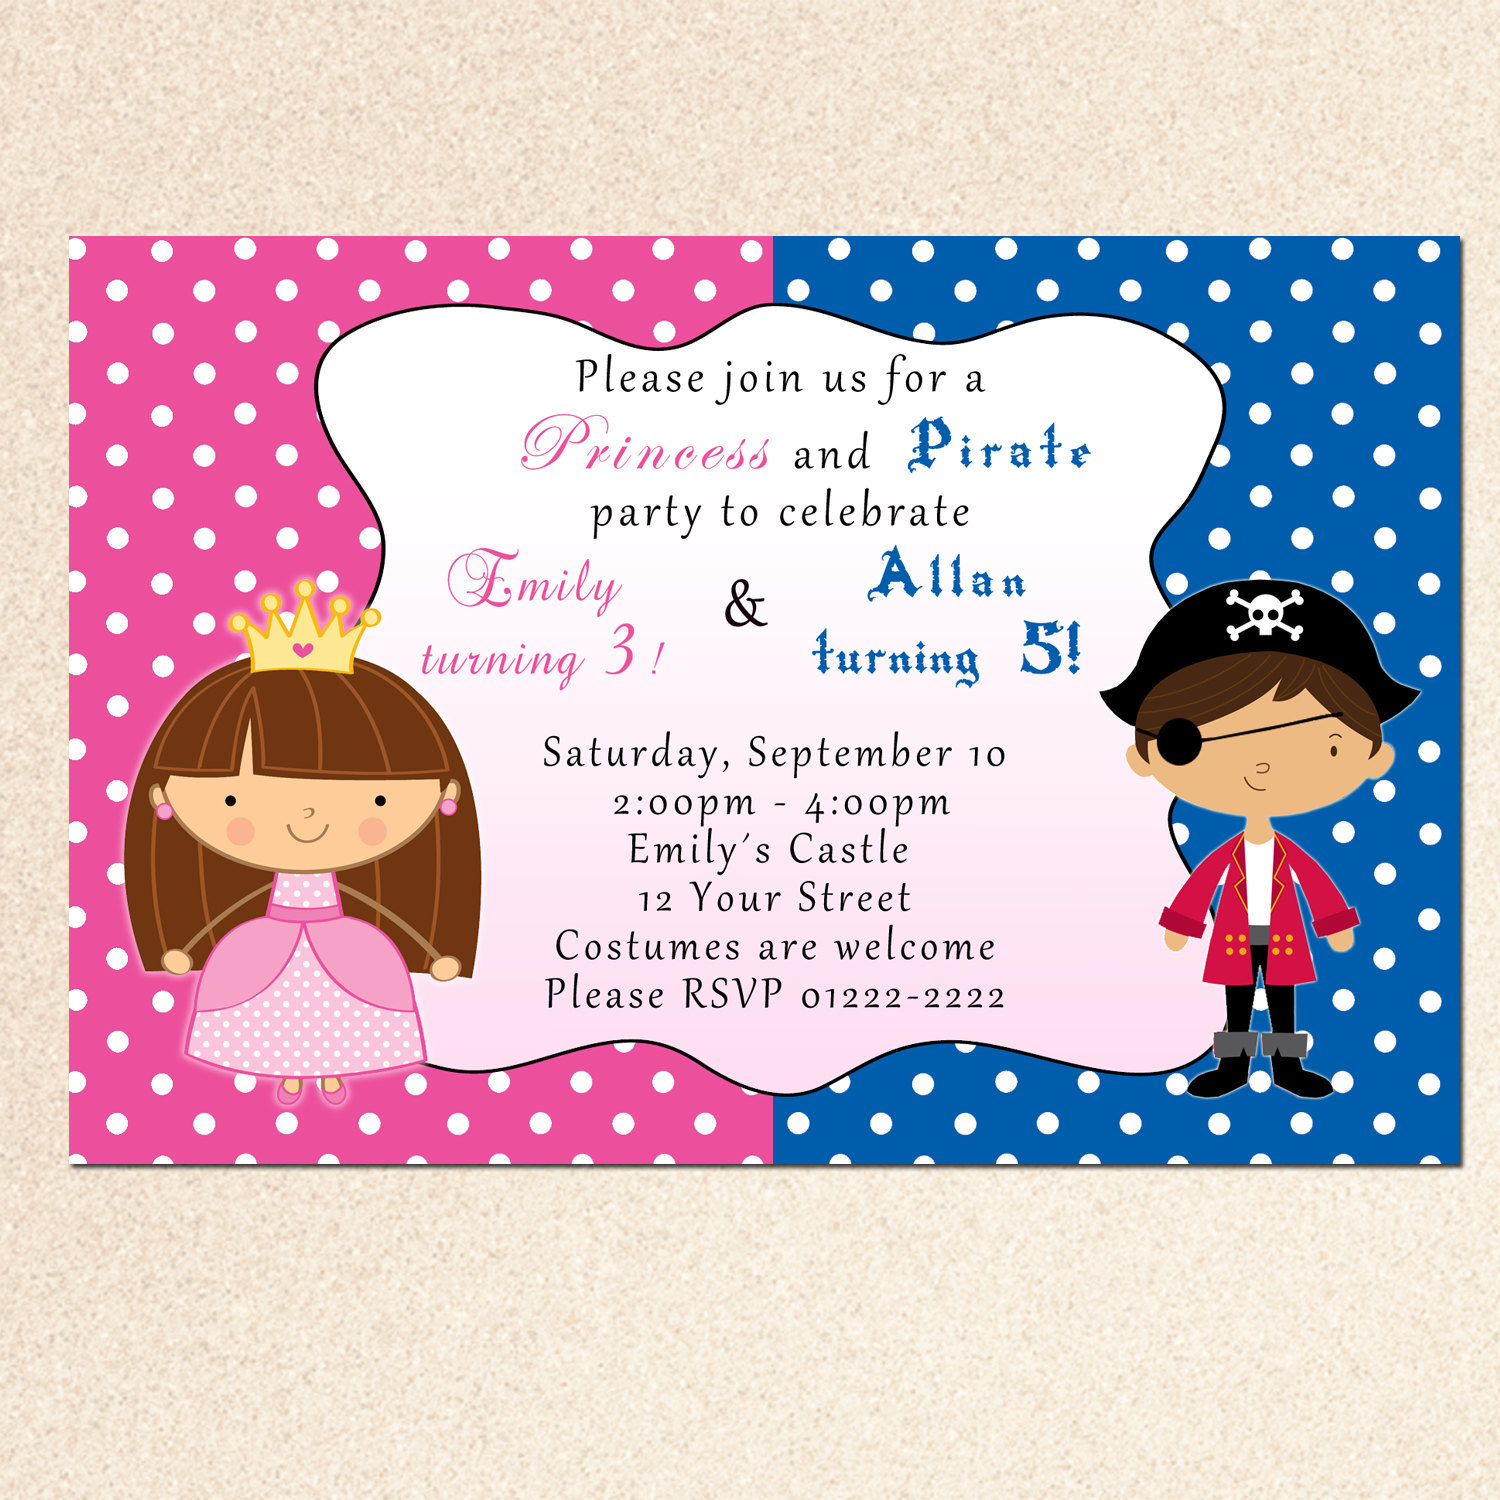 Twins Birthday Invitations for luxury invitations design